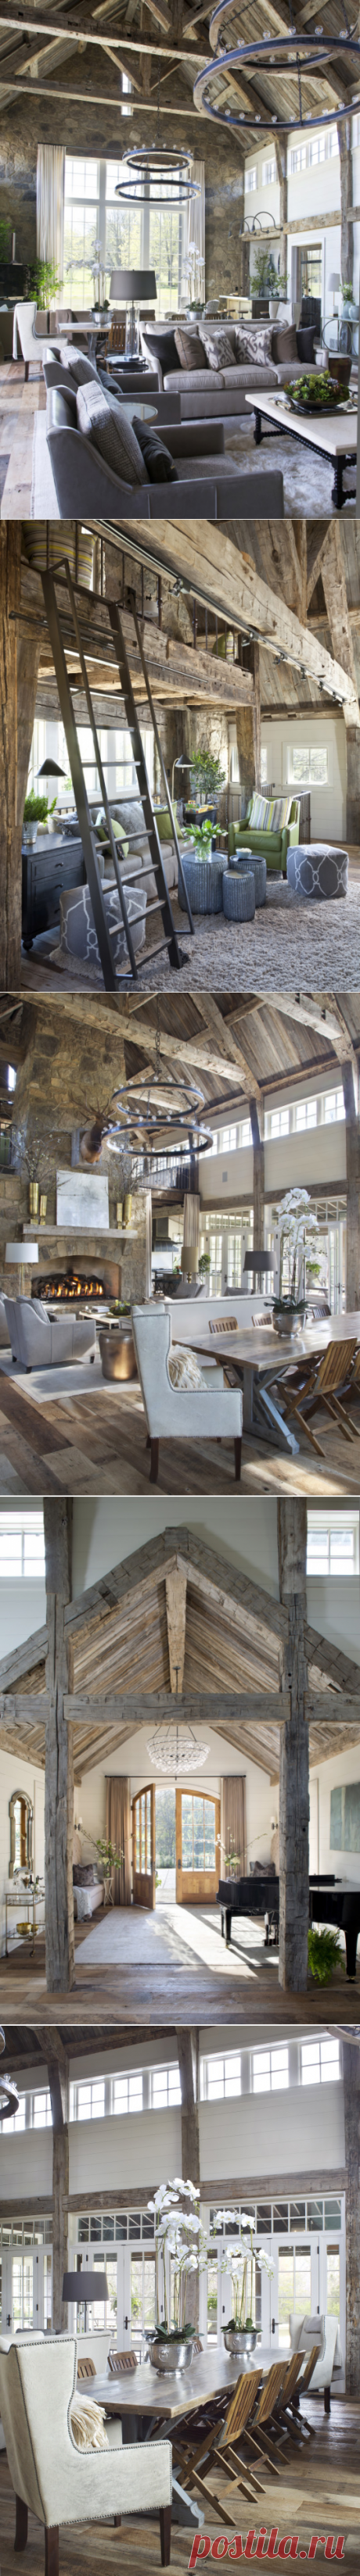 That's What Rustic Elegance Is All About - Decoholic